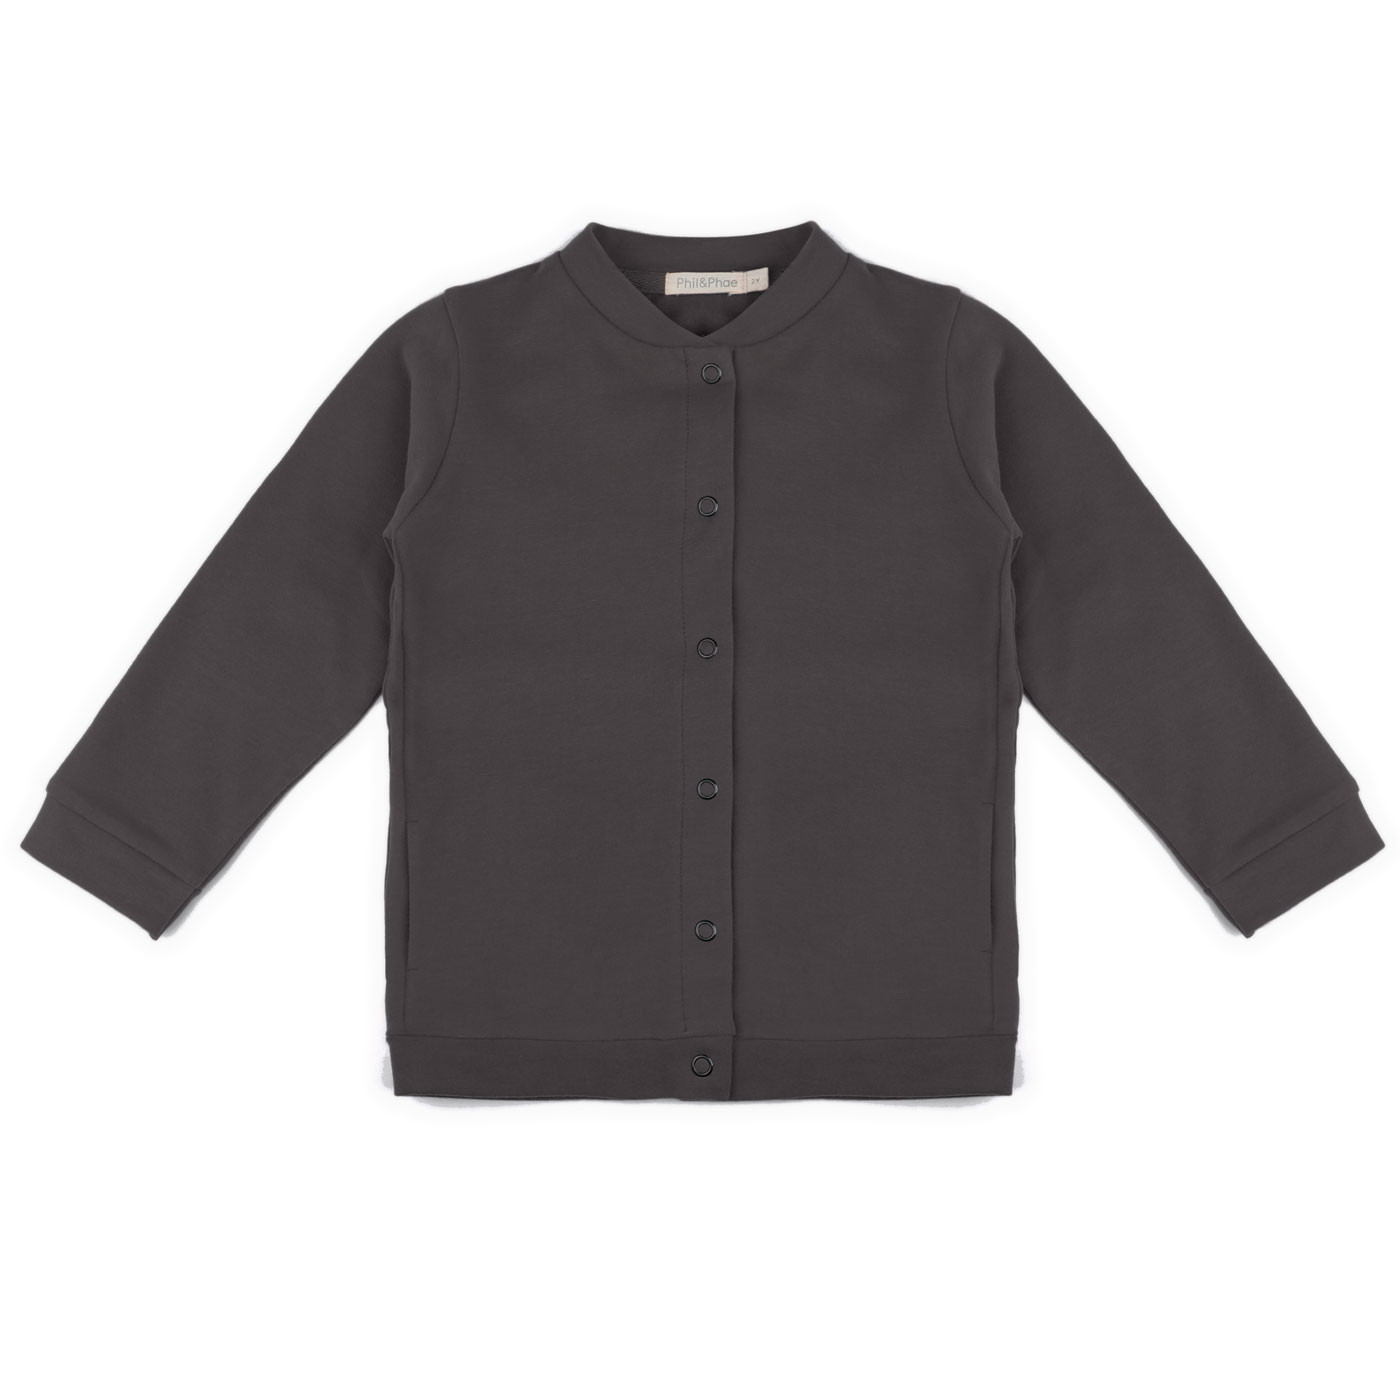 ess-basic-sweat-cardigan-graphite-1400x1400.jpg